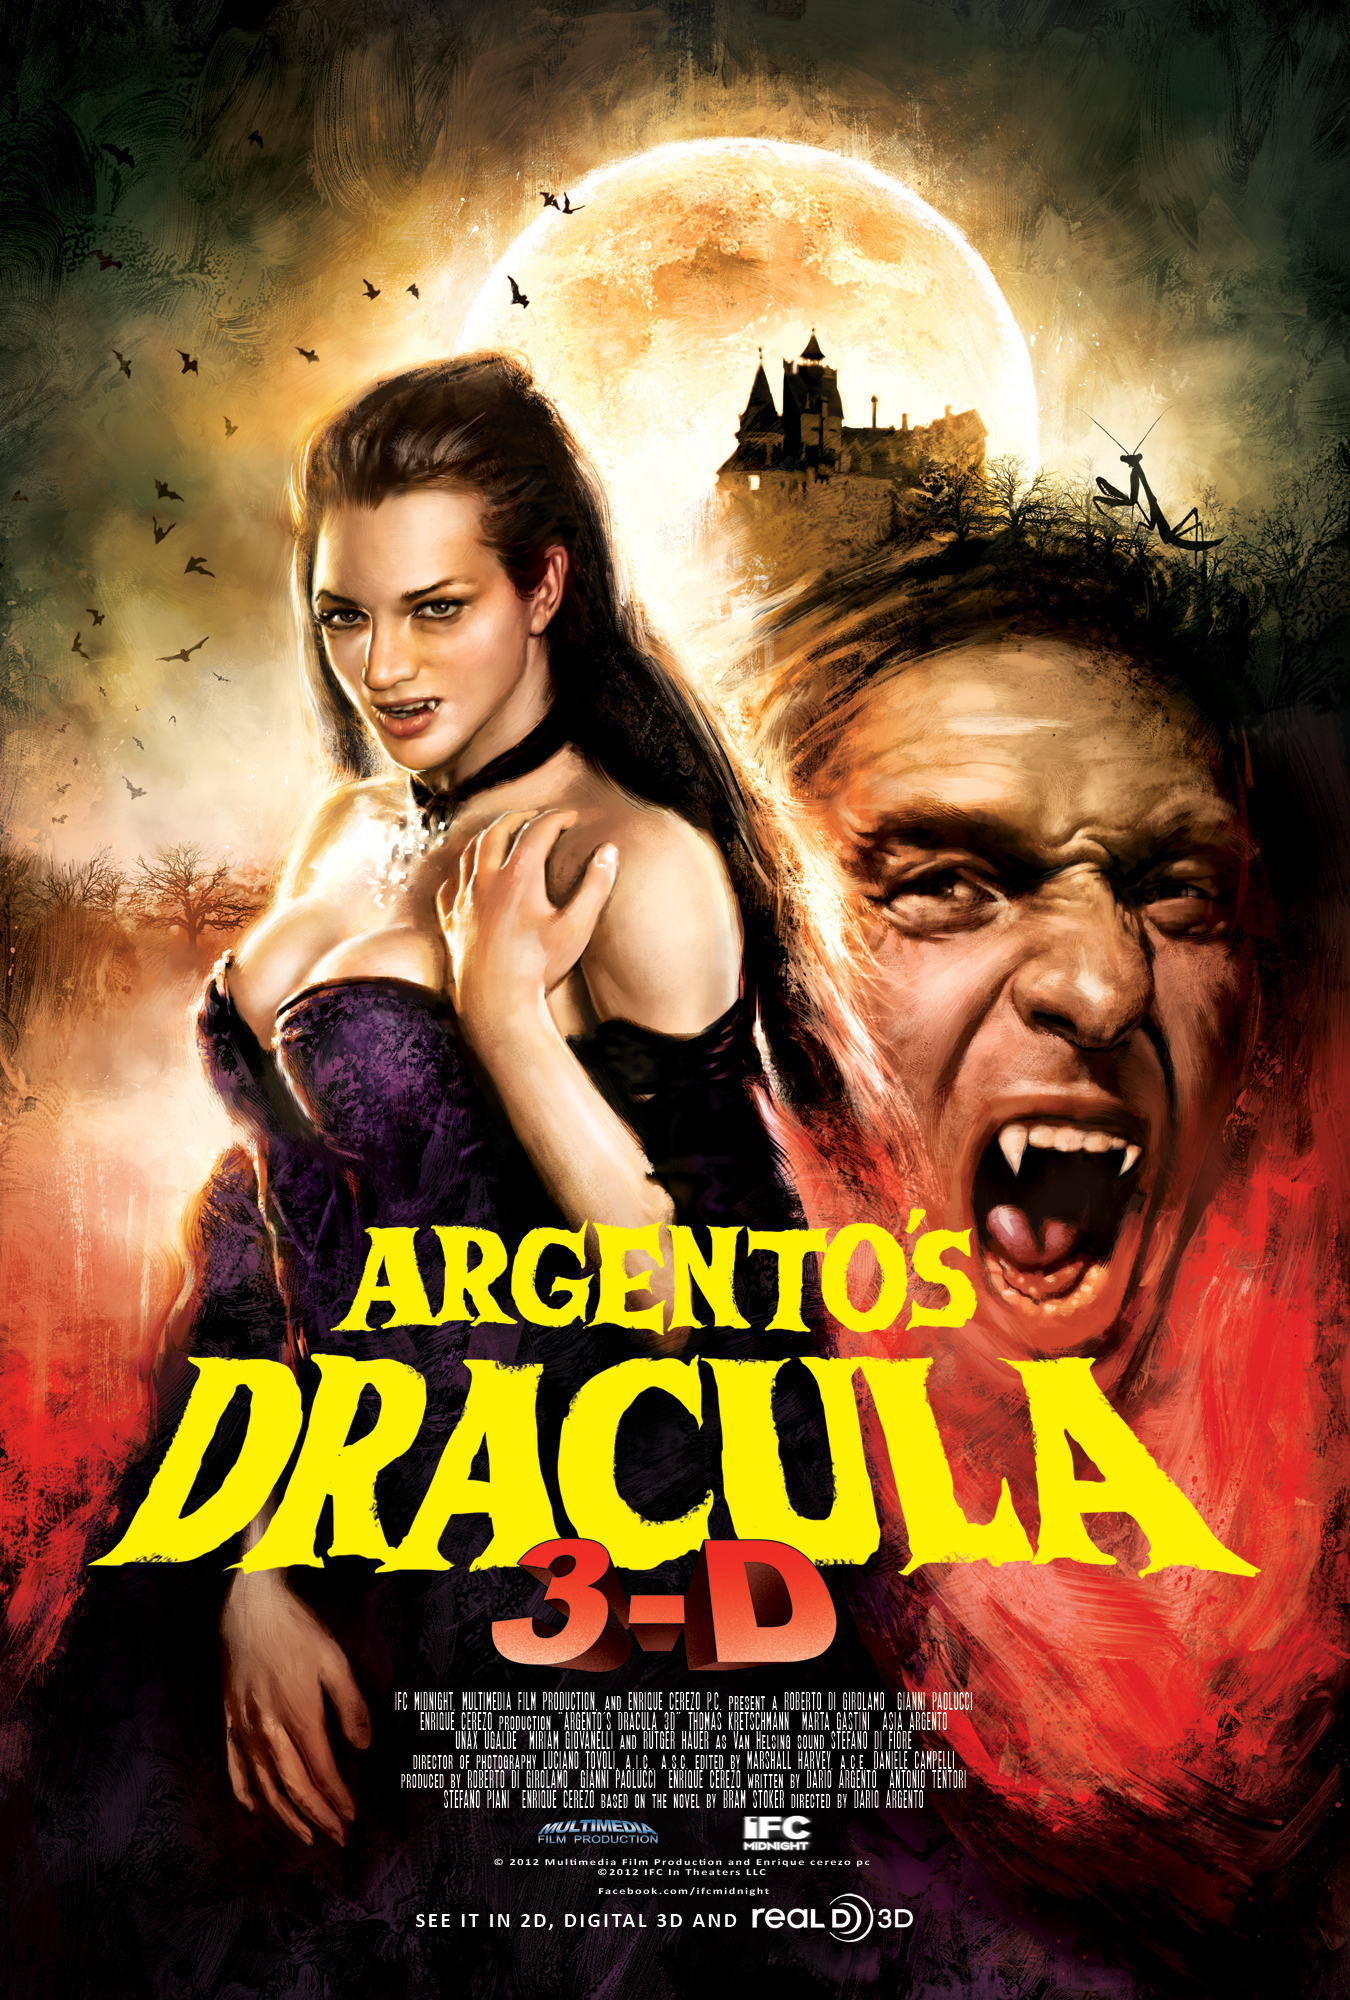 Argentos Dracula 3D poster revised 9 9 2013 02000px Check Out Trailer and Poster for Argentos Dracula 3D